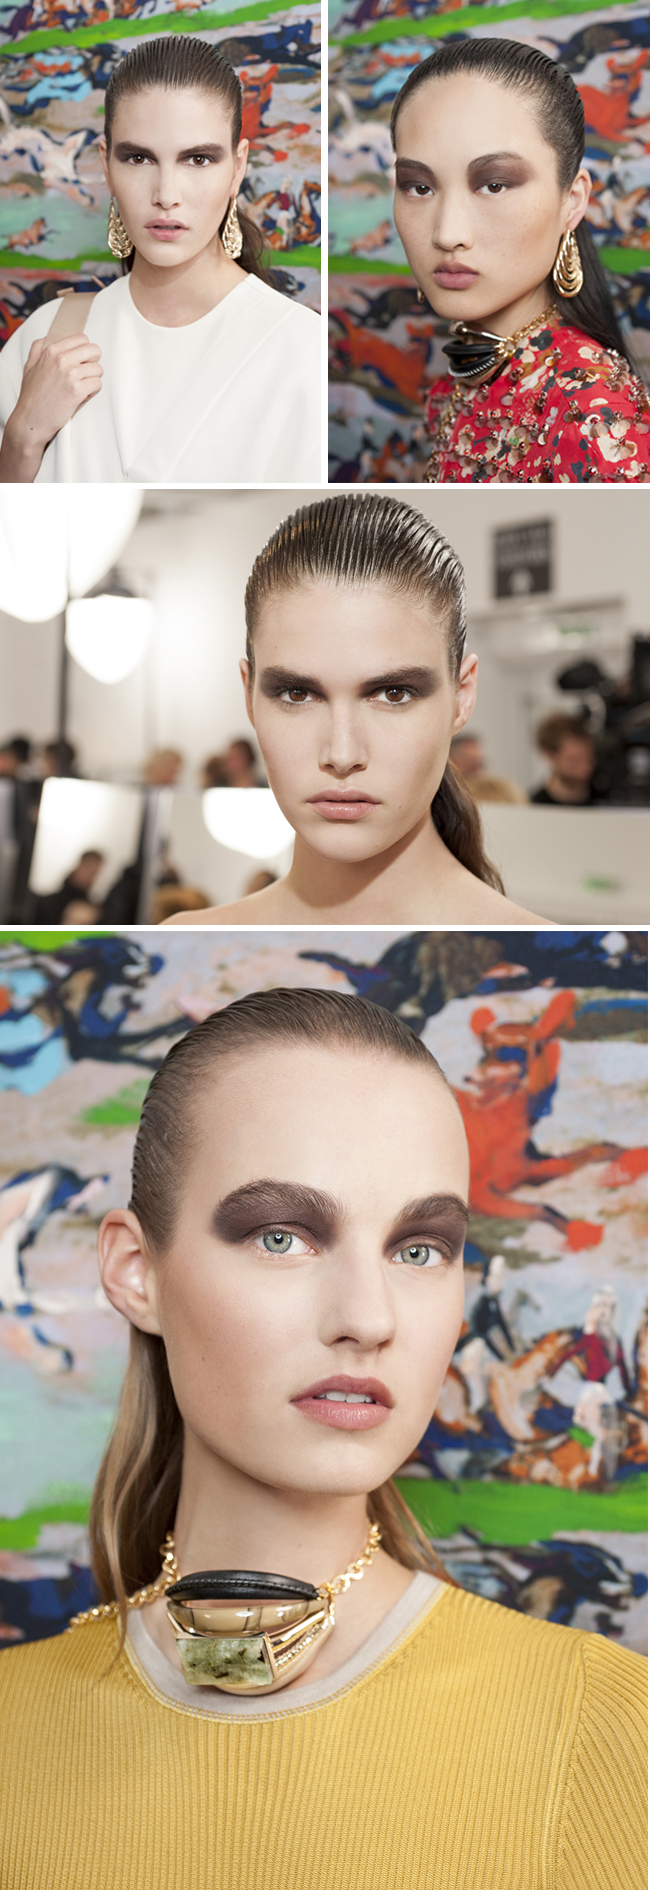 Backstage, Dior Cruise 2017, Dior Makeup, Dior Beauty, Peter Philips, Dior Show, Dior, Perfect Wedding Magazine, Perfect Wedding Blog, Bridal Beauty, Beauty Trends